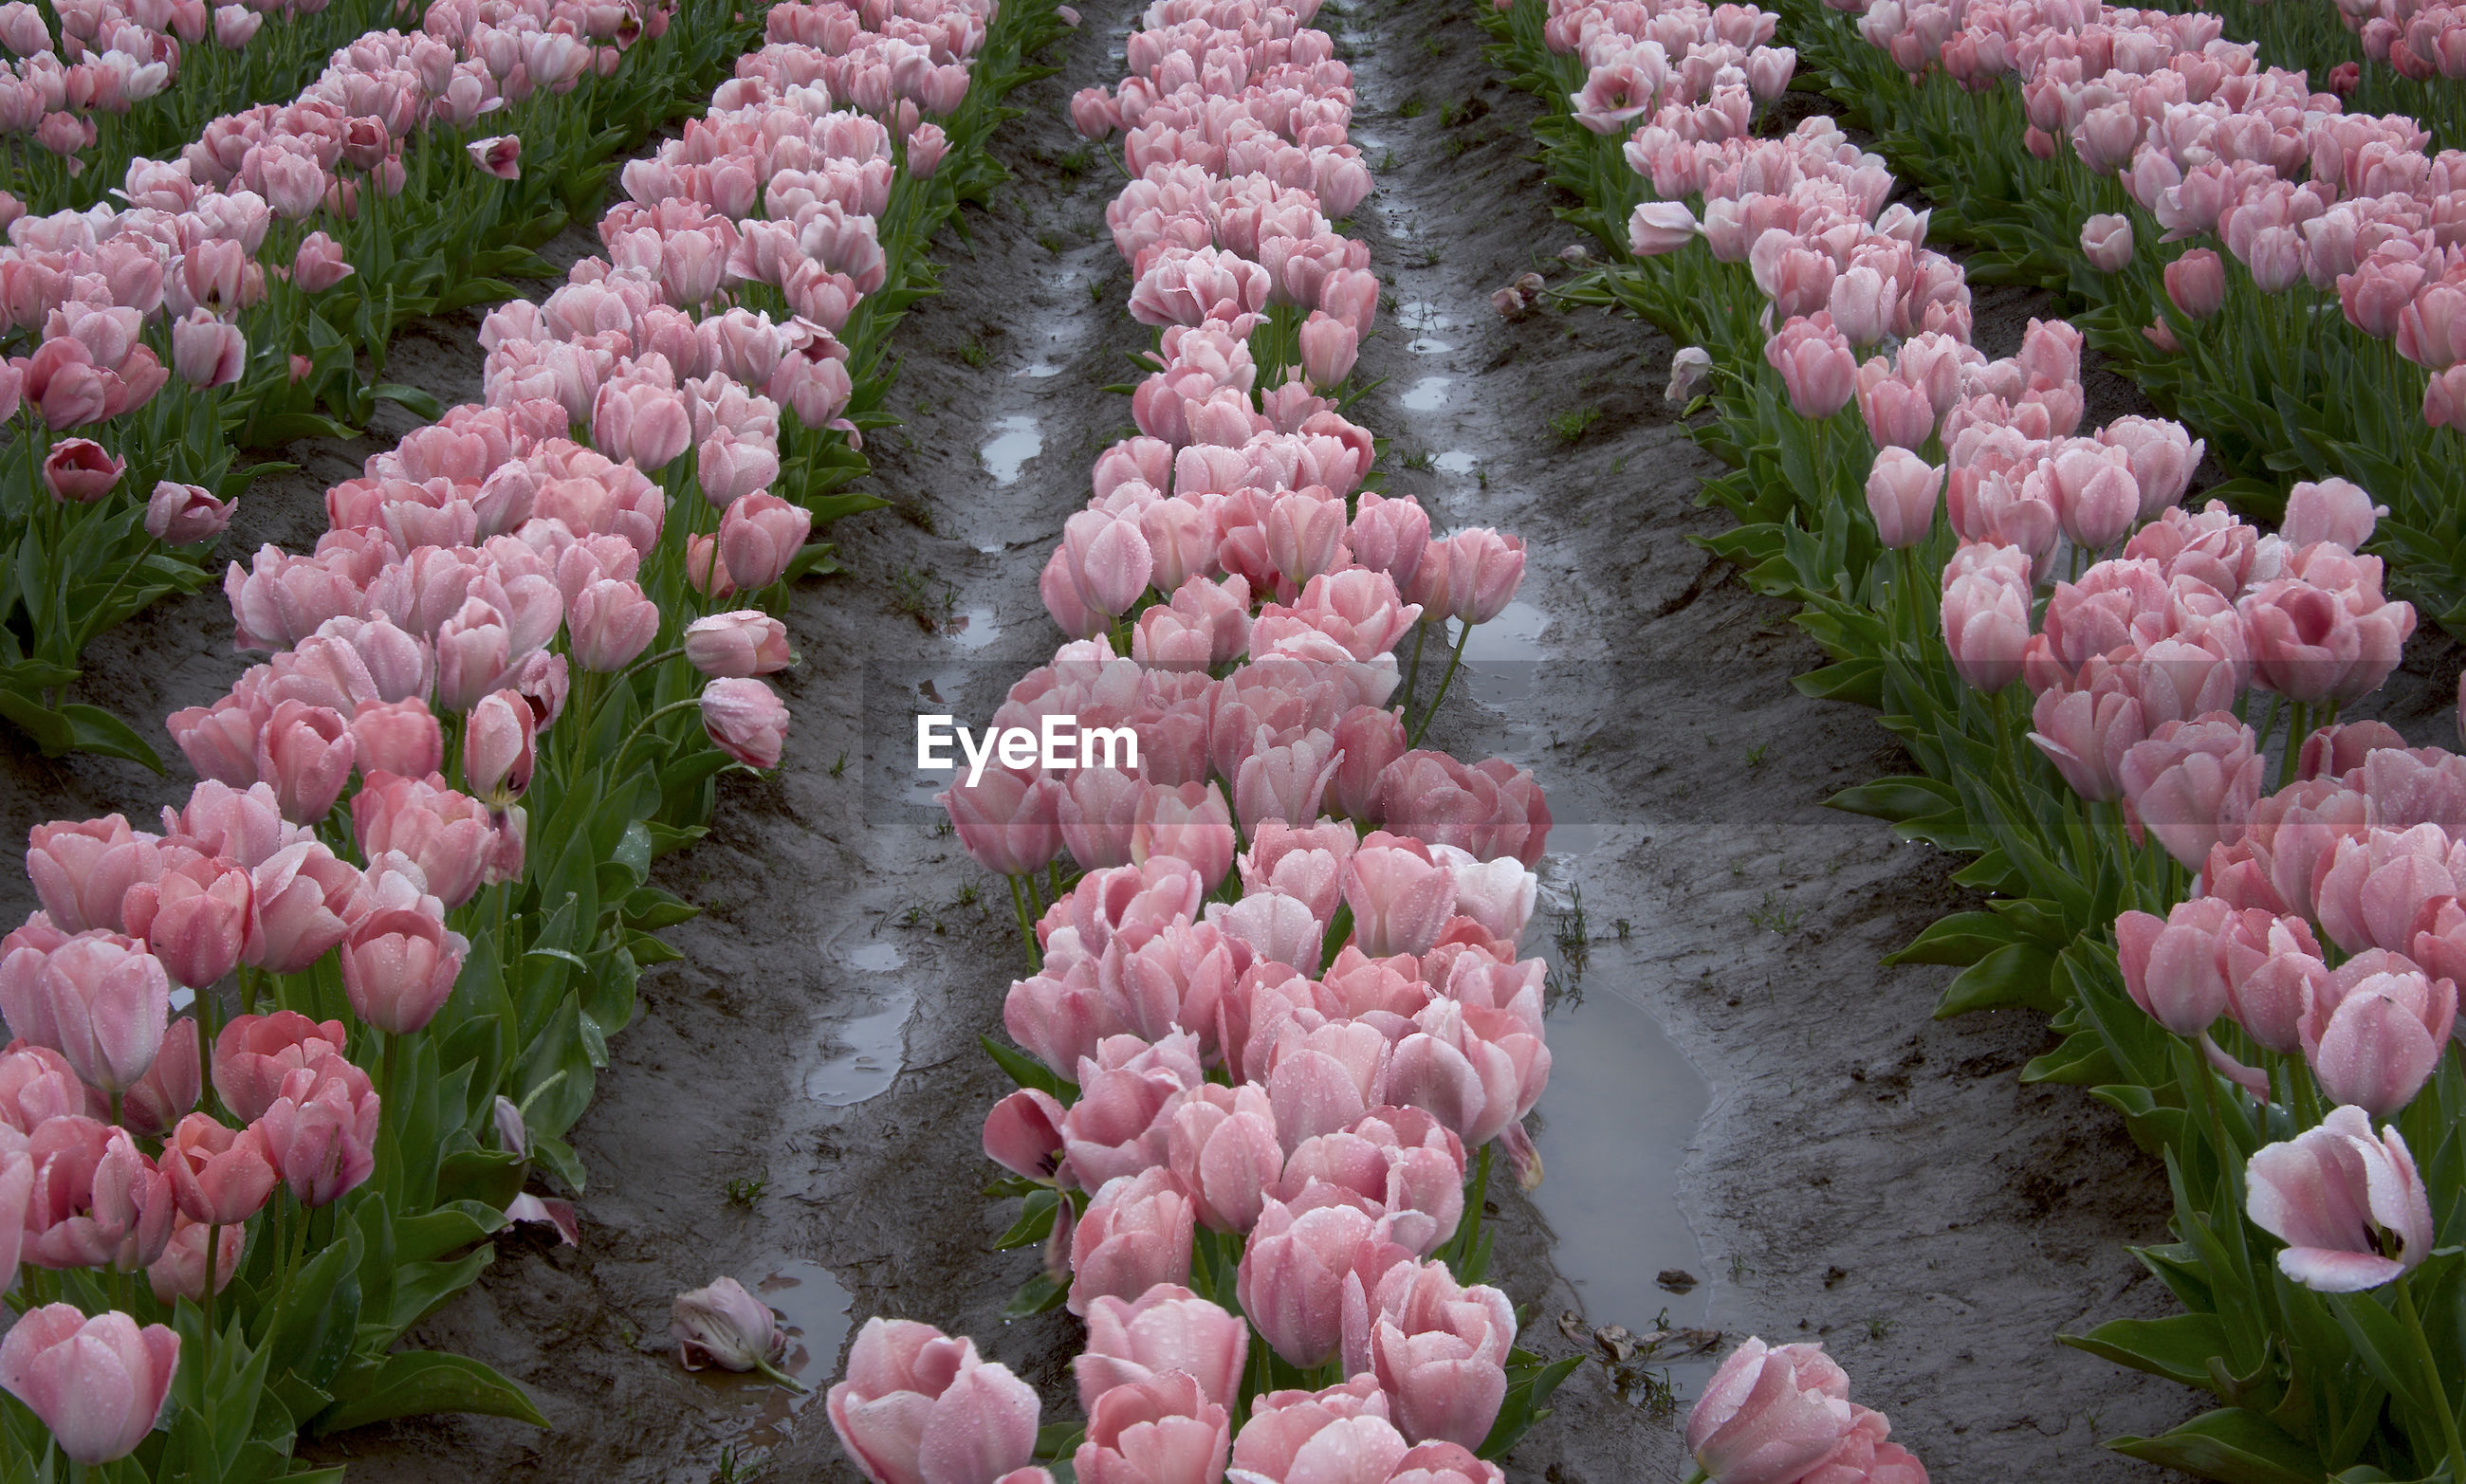 HIGH ANGLE VIEW OF PINK TULIP FLOWERS IN GARDEN